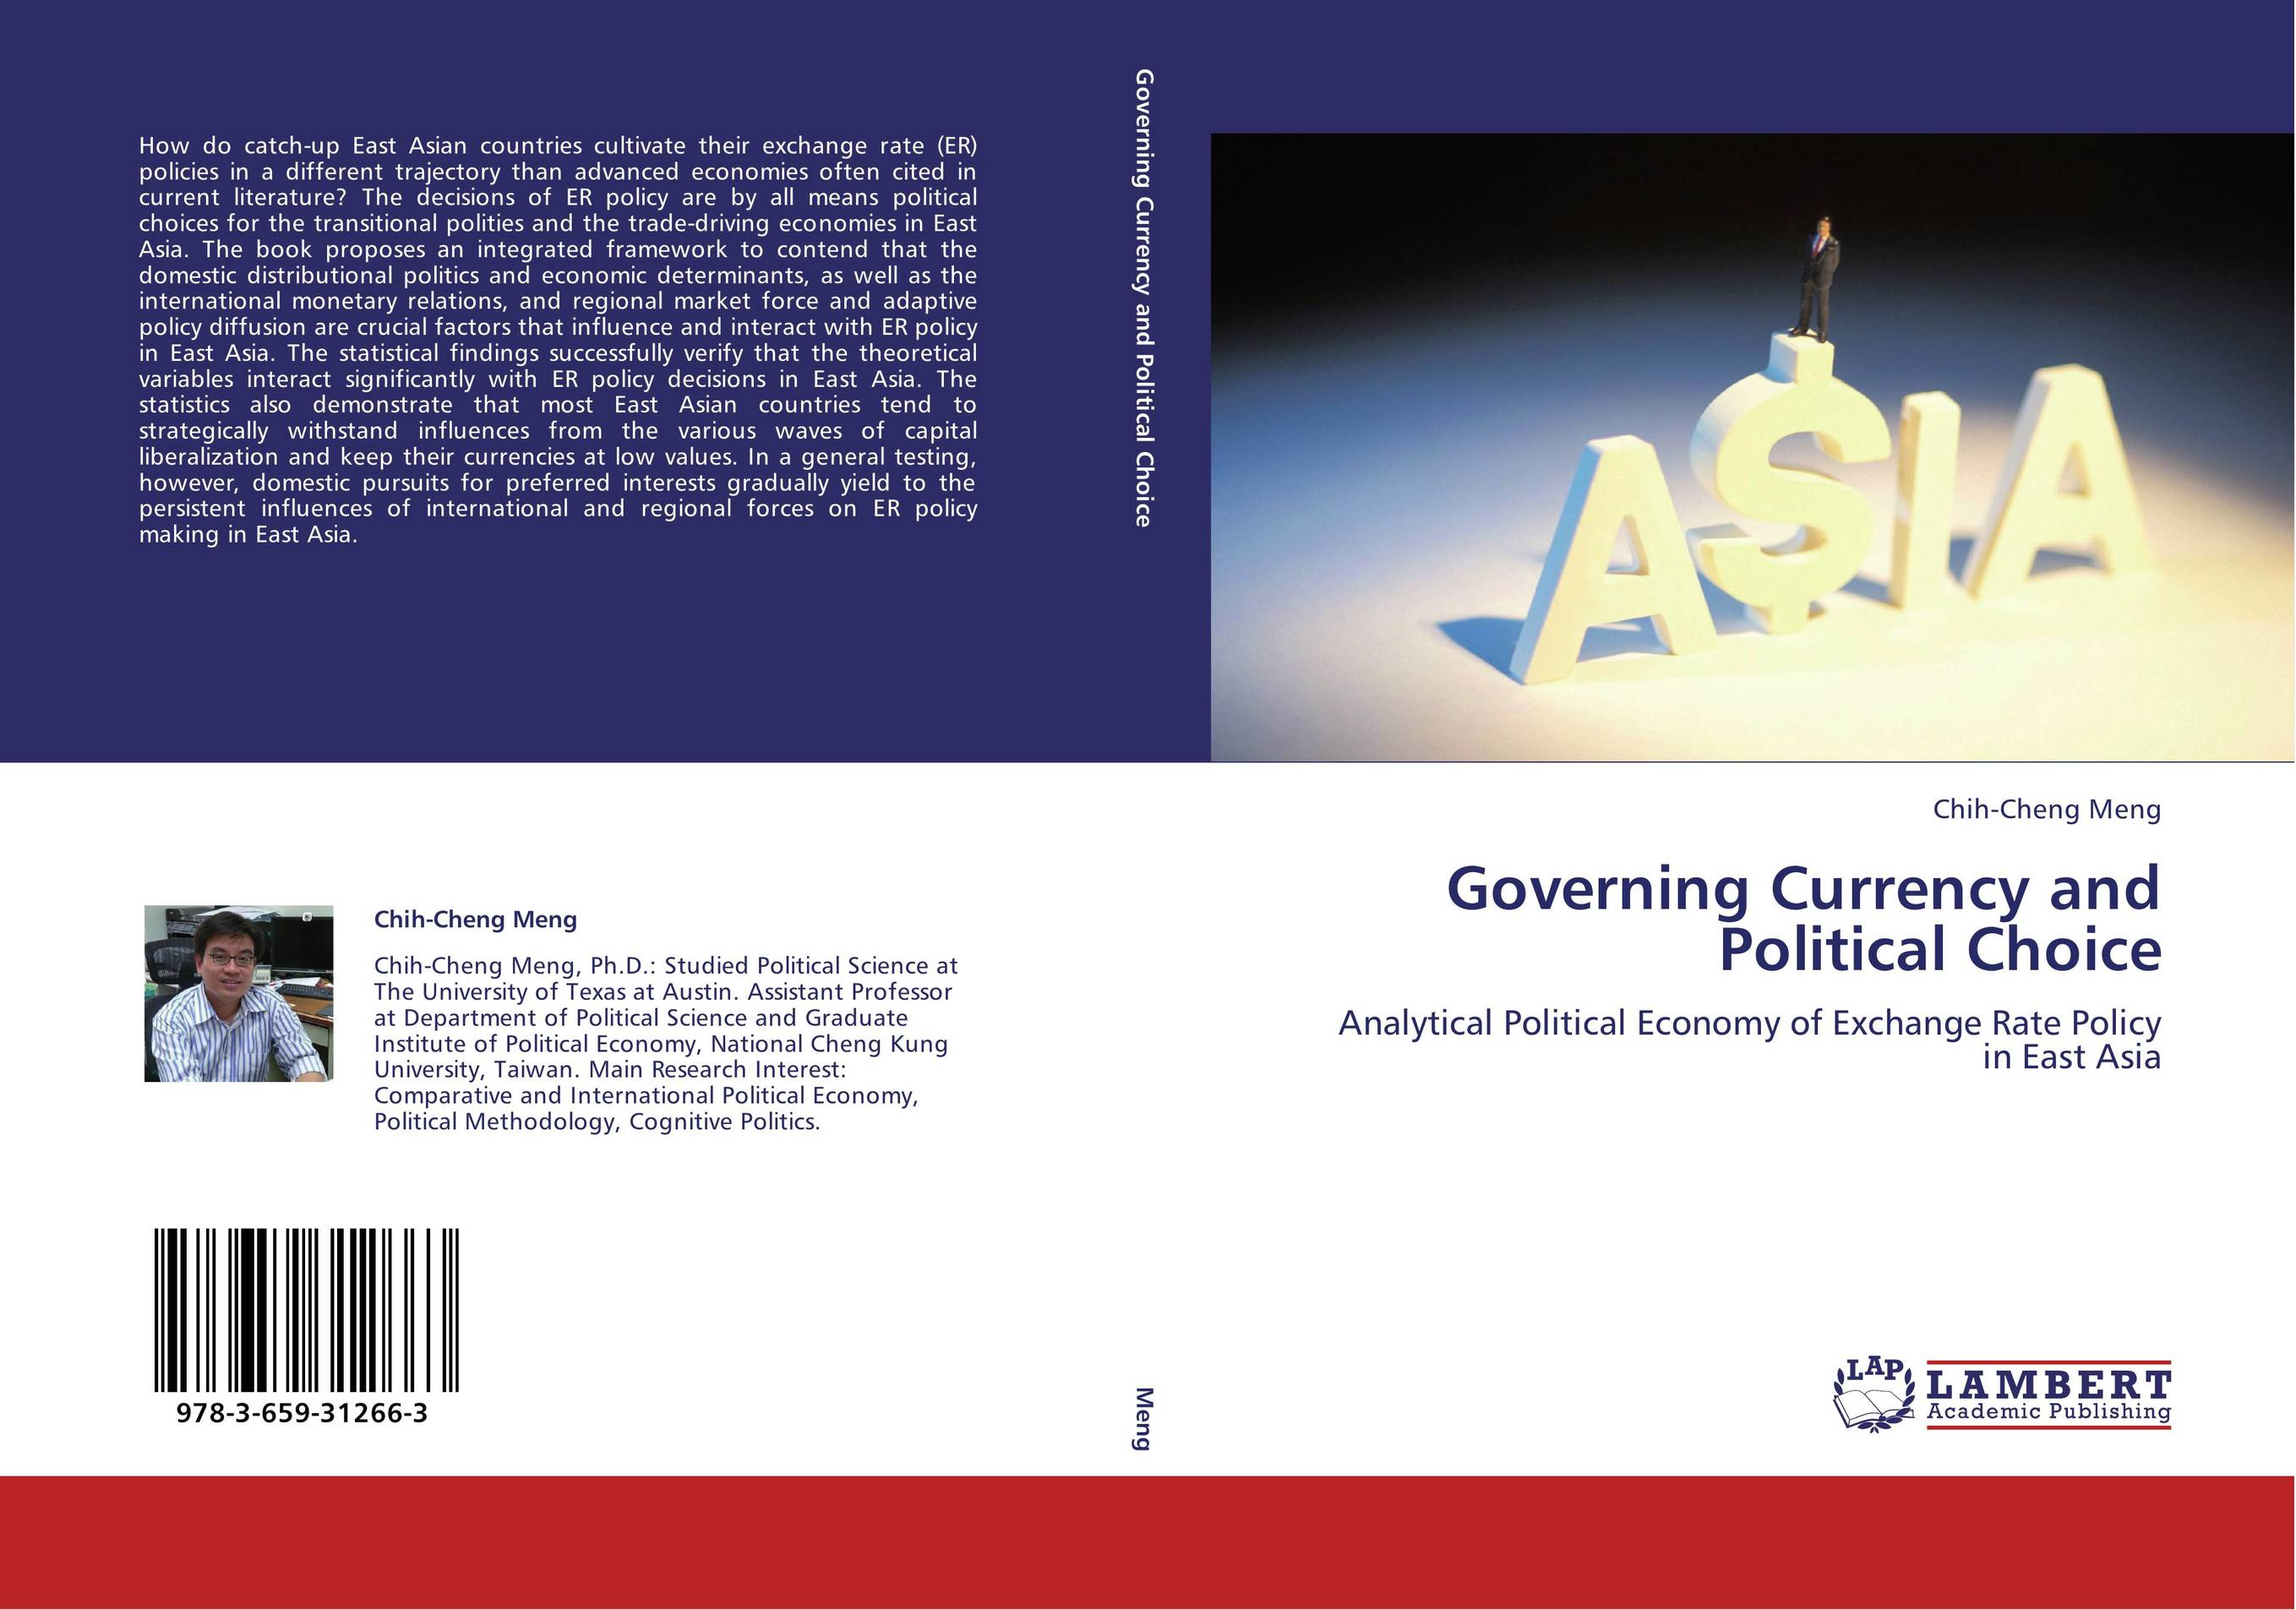 political economy The international political economy program at carthage features an interdisciplinary approach that examines the evolving web of global relationships and the public policy discussions that help direct today's global economy.